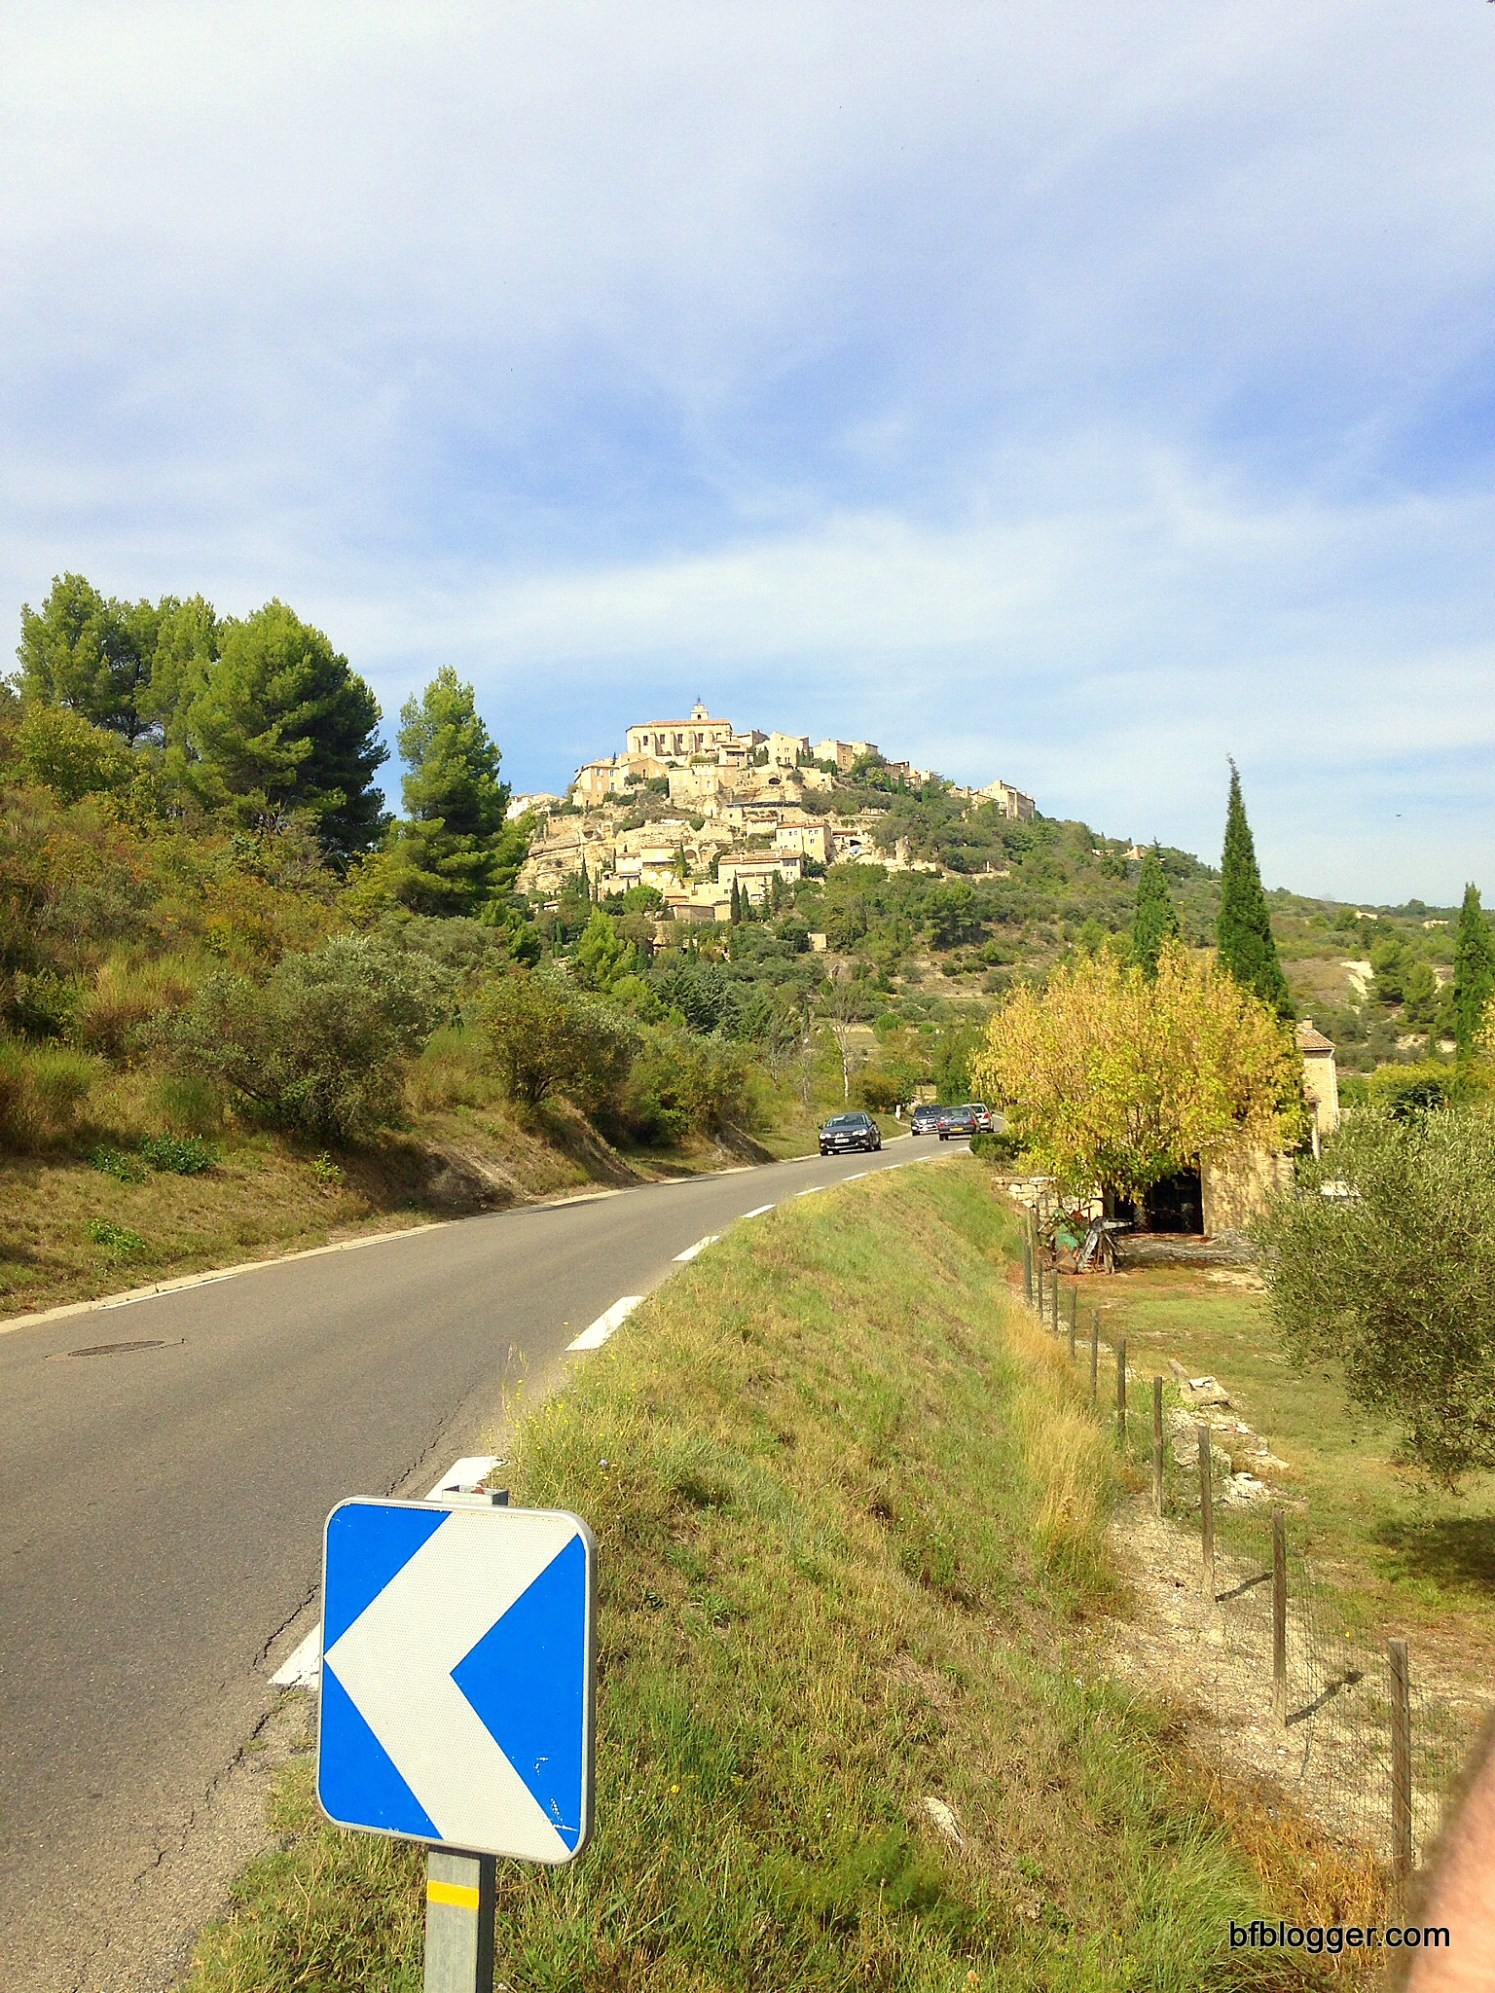 Lost in the Luberon